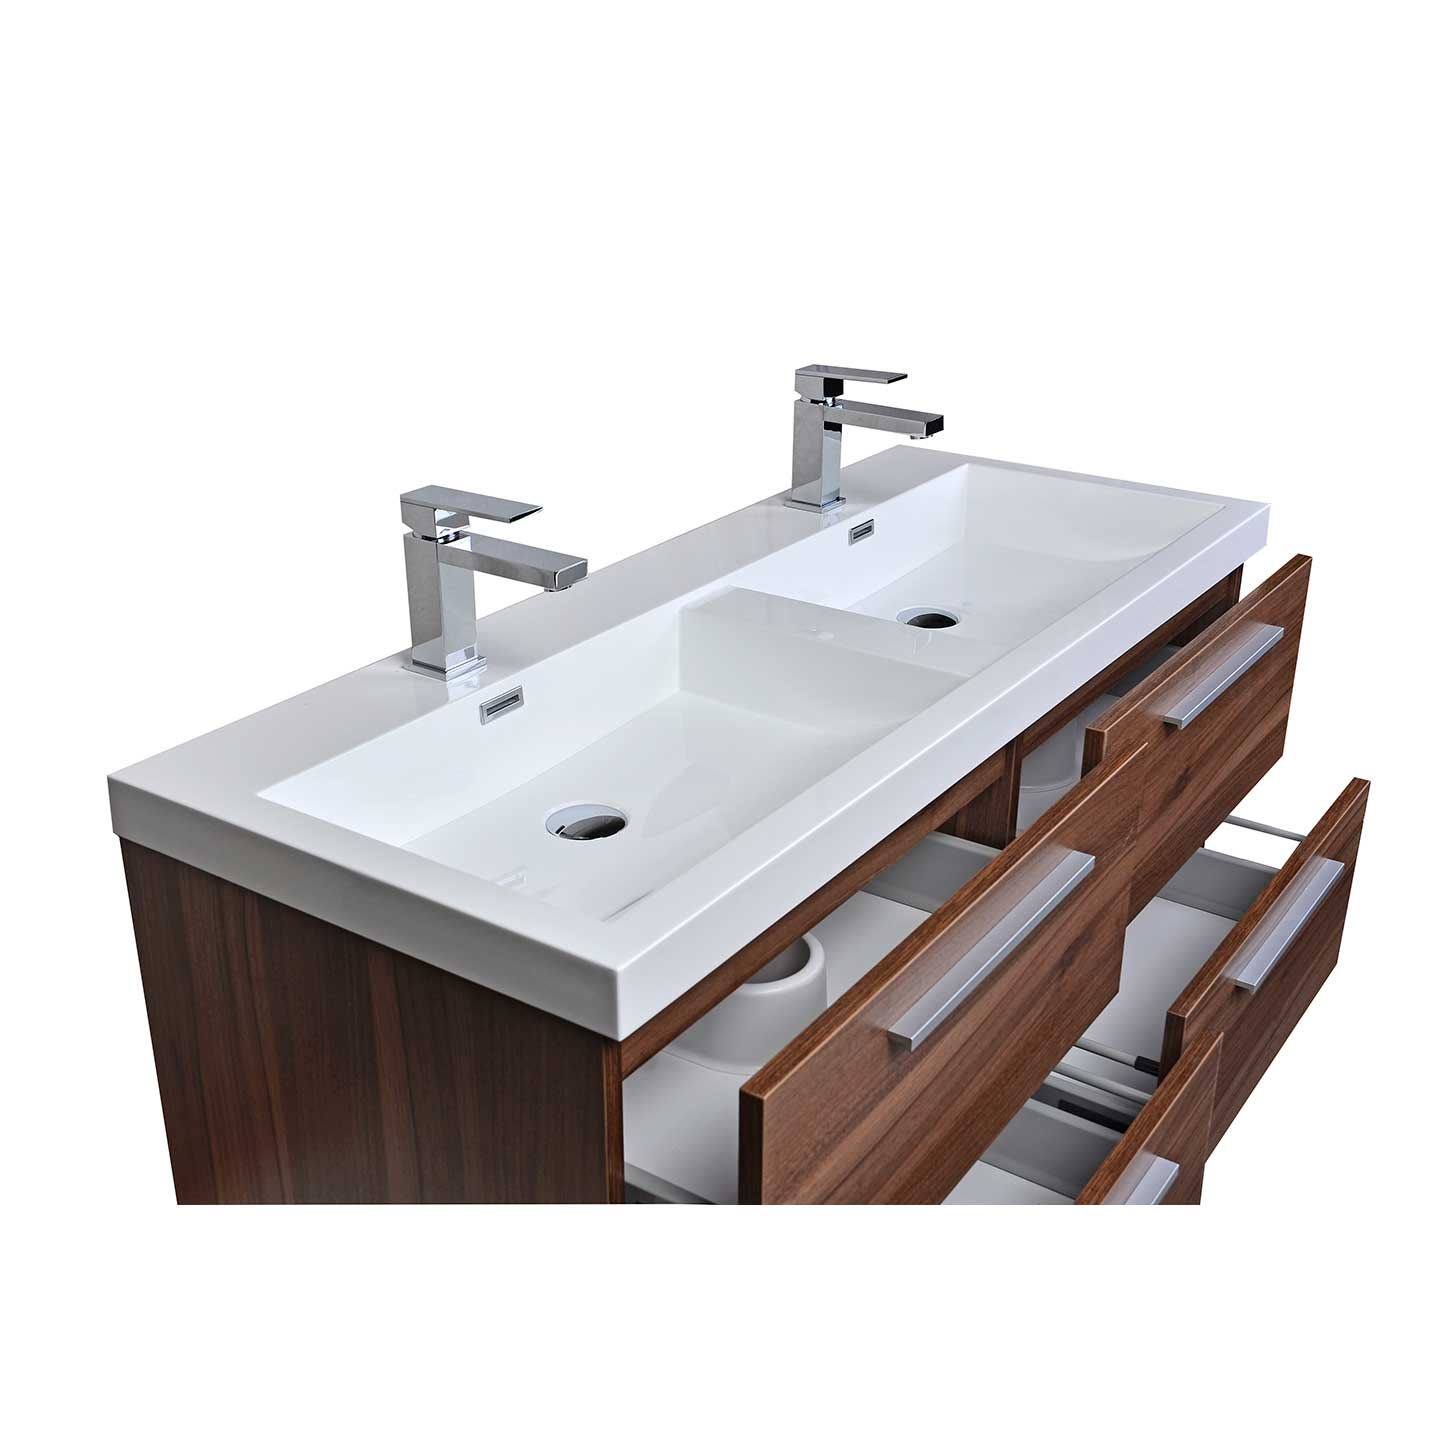 Where can i buy a bathroom vanity - Buy 47 Inch Wall Mounted Modern Double Bathroom Vanity In Walnut Tn T1200d Wn On Conceptbaths Com